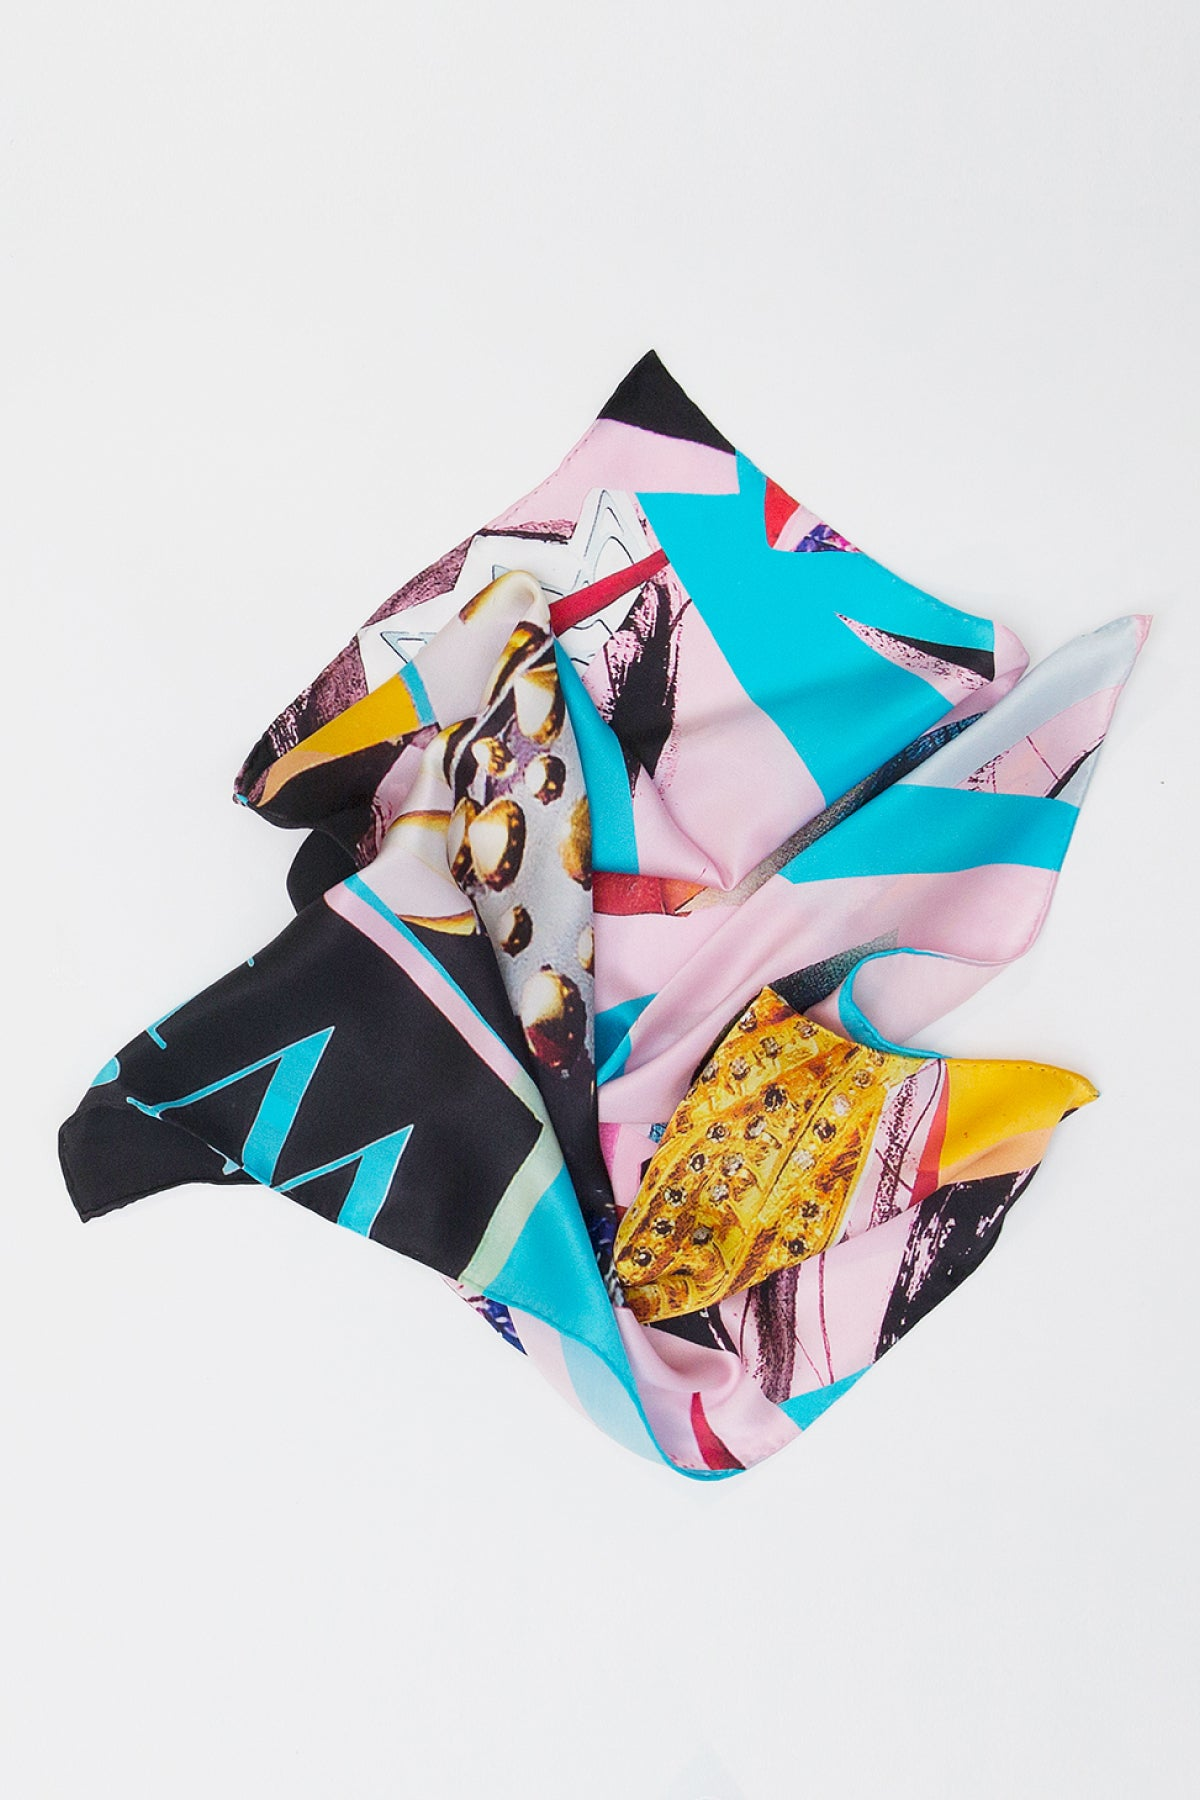 Blues Star Square Scarf Scarves The Fashion Advocate ethical Australian fashion designer boutique Melbourne sustainable clothes